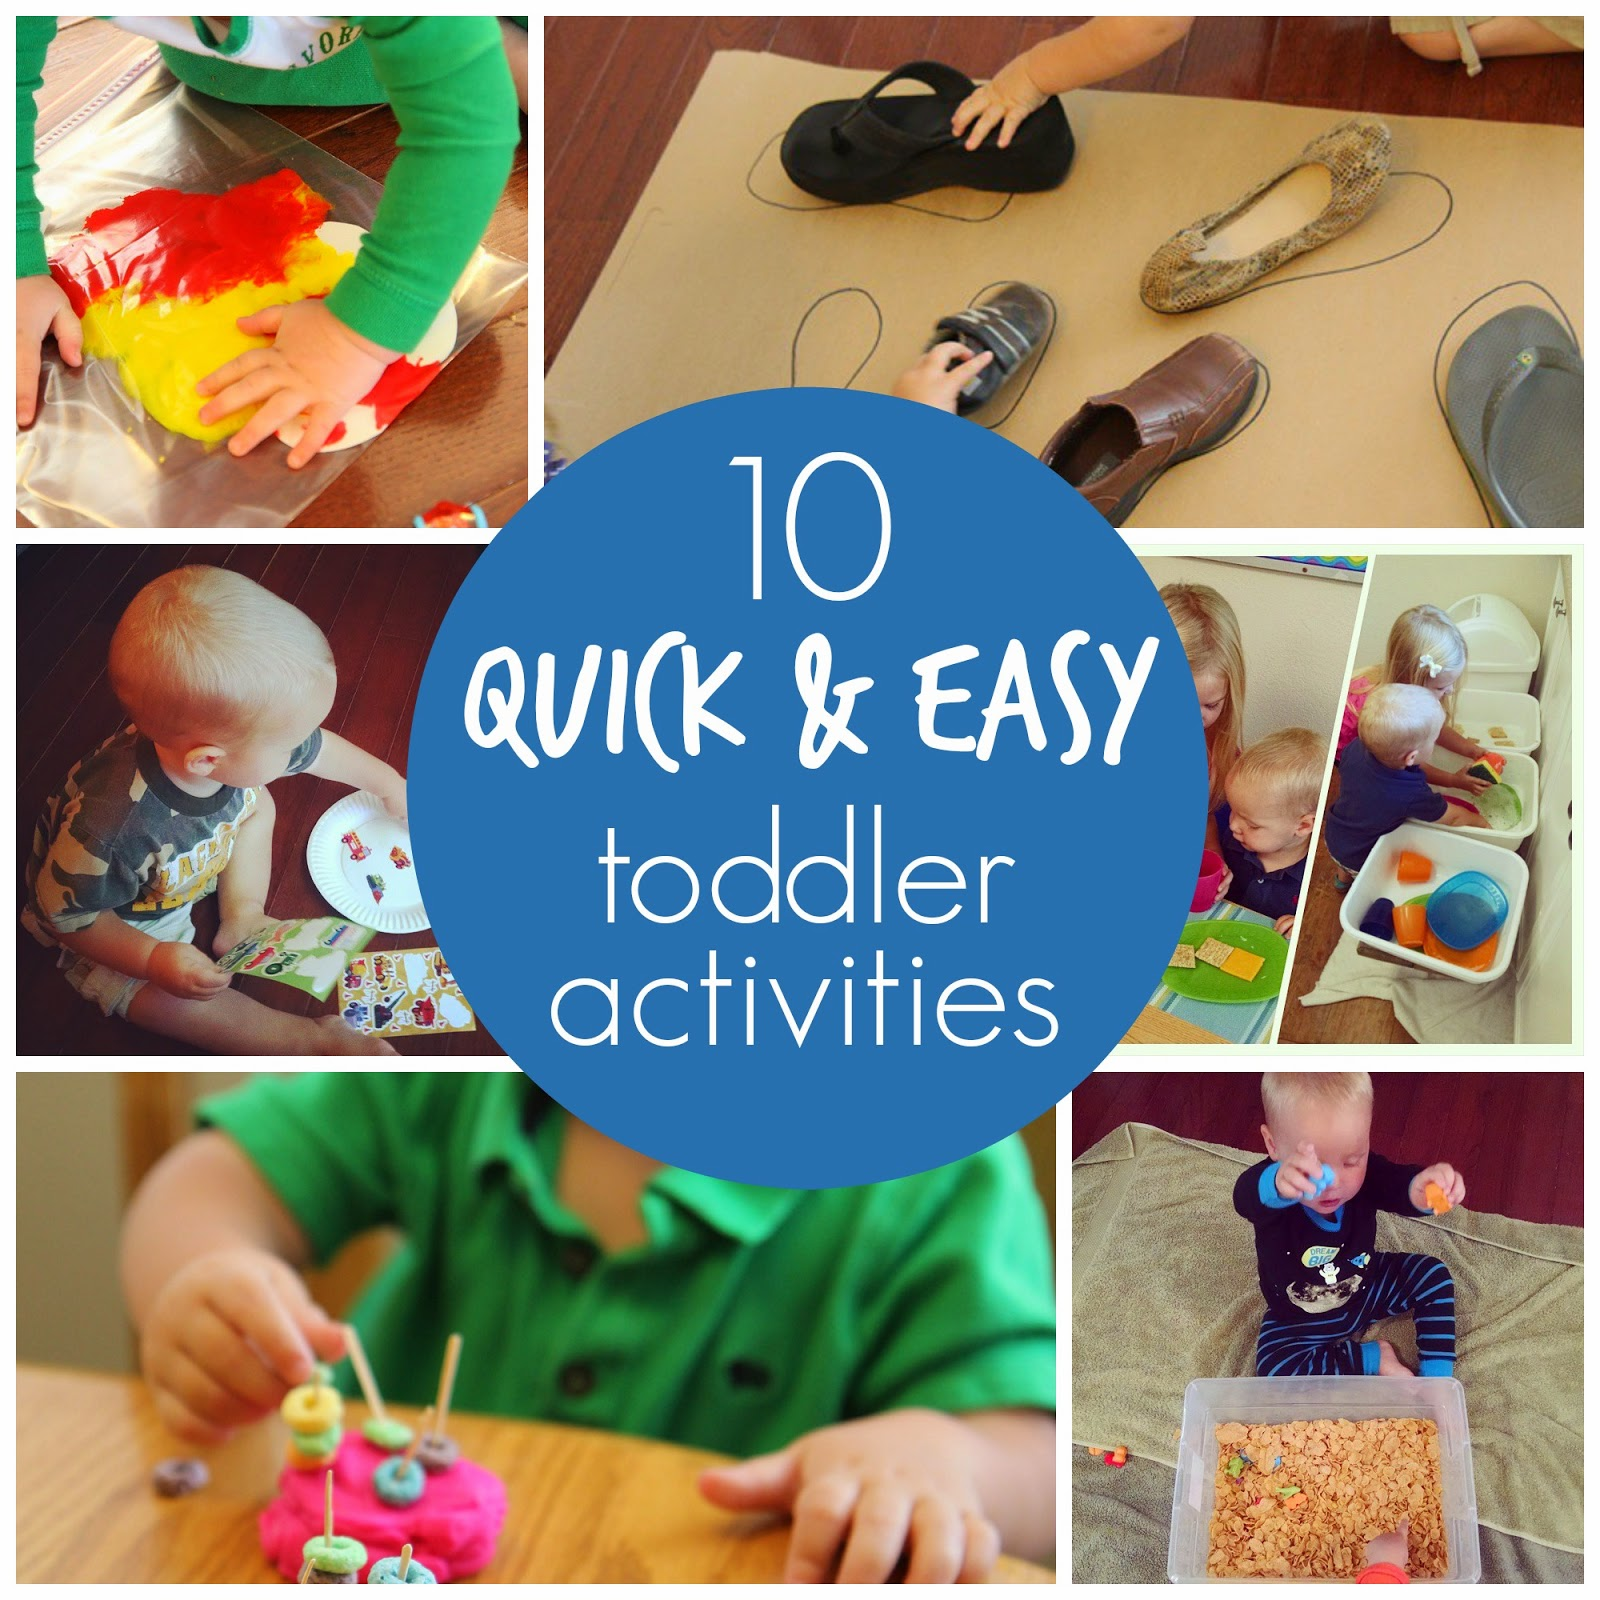 Toddler Approved 10 Quick & Easy Toddler Activities